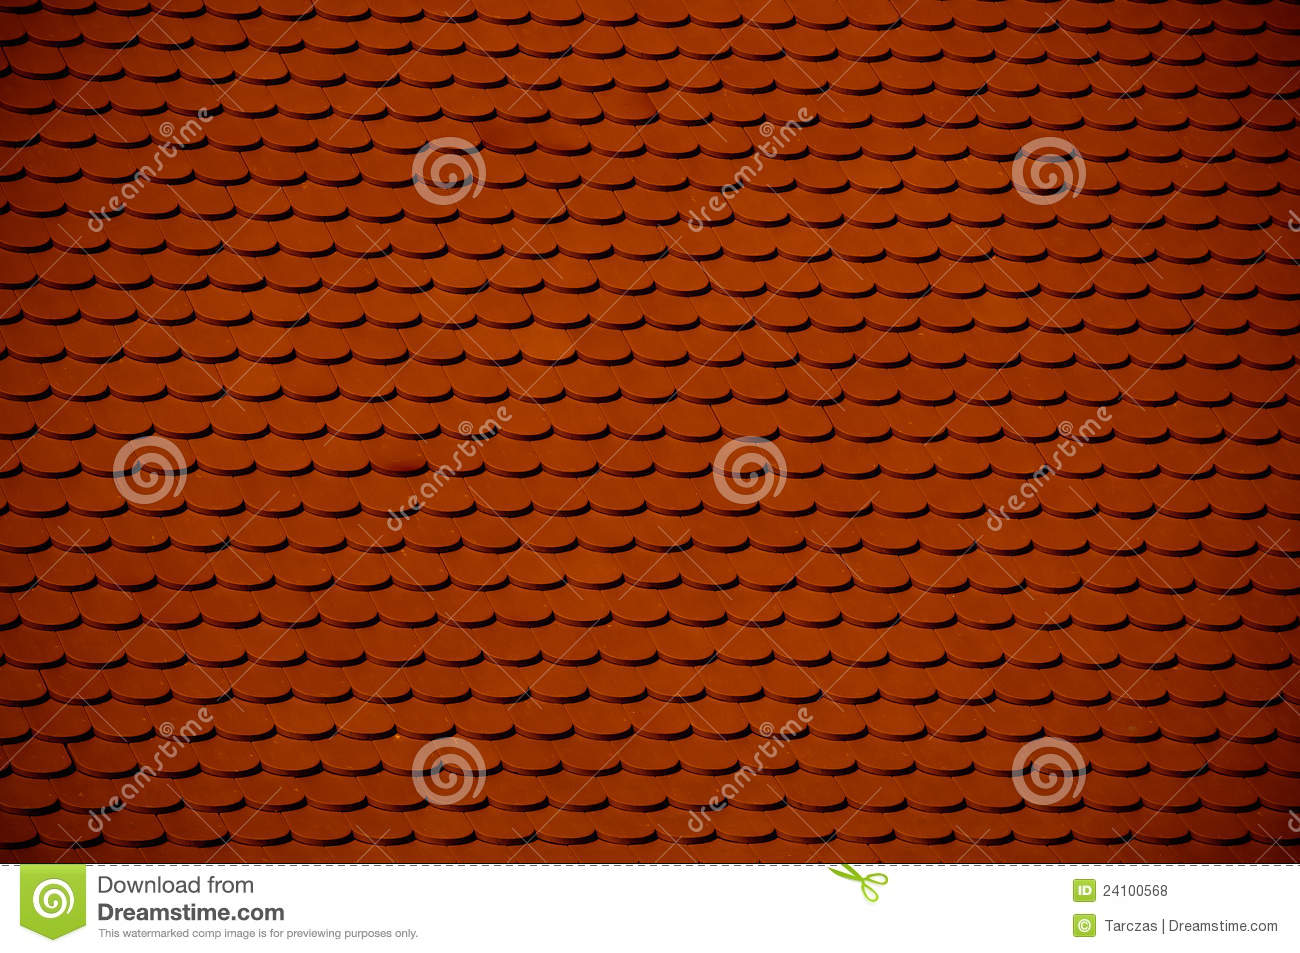 Red Clay Roof Tile Royalty Free Stock Photos Image 24100568